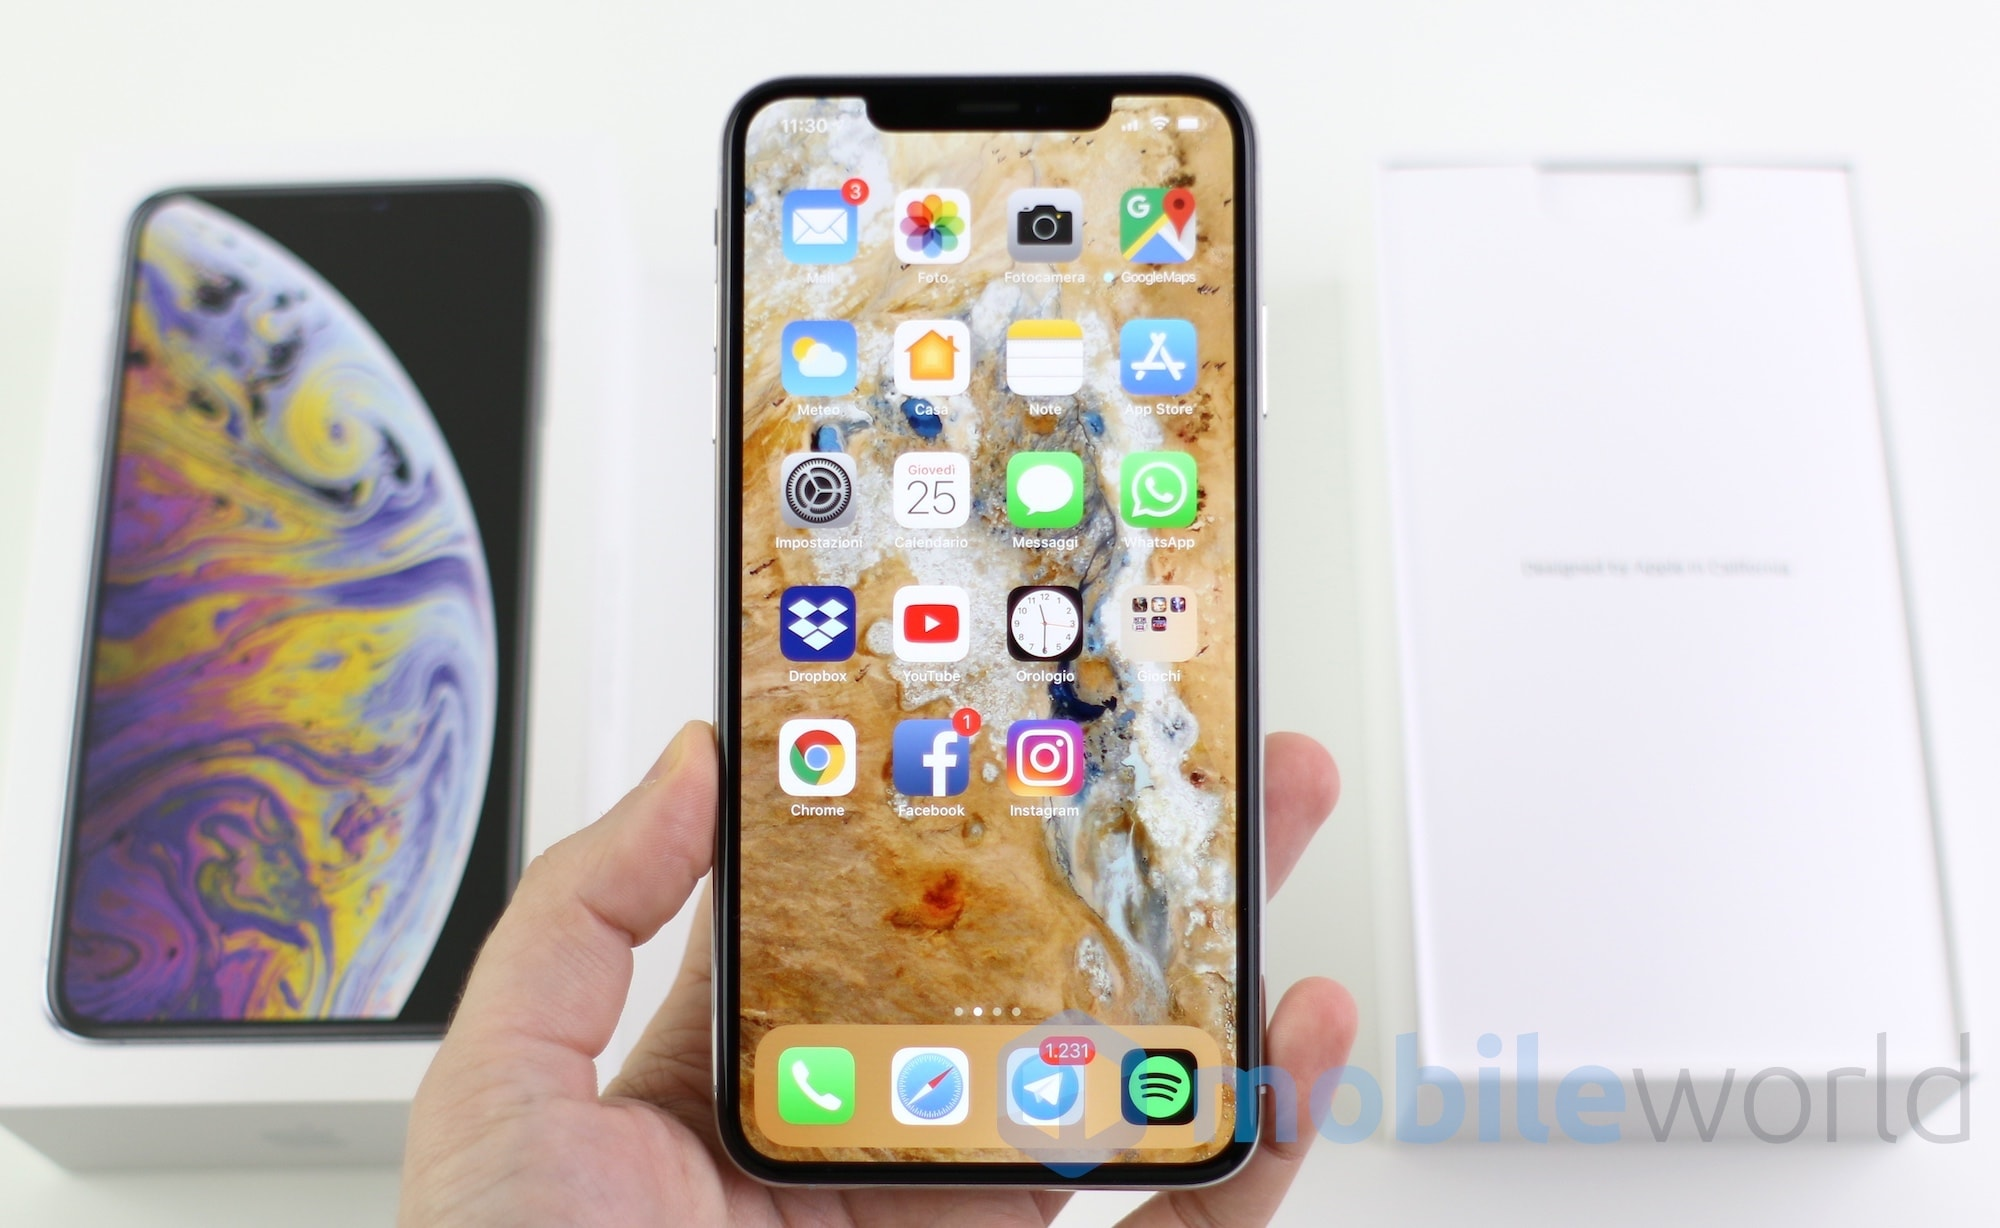 Miglior iPhone in assoluto: iPhone XS Max